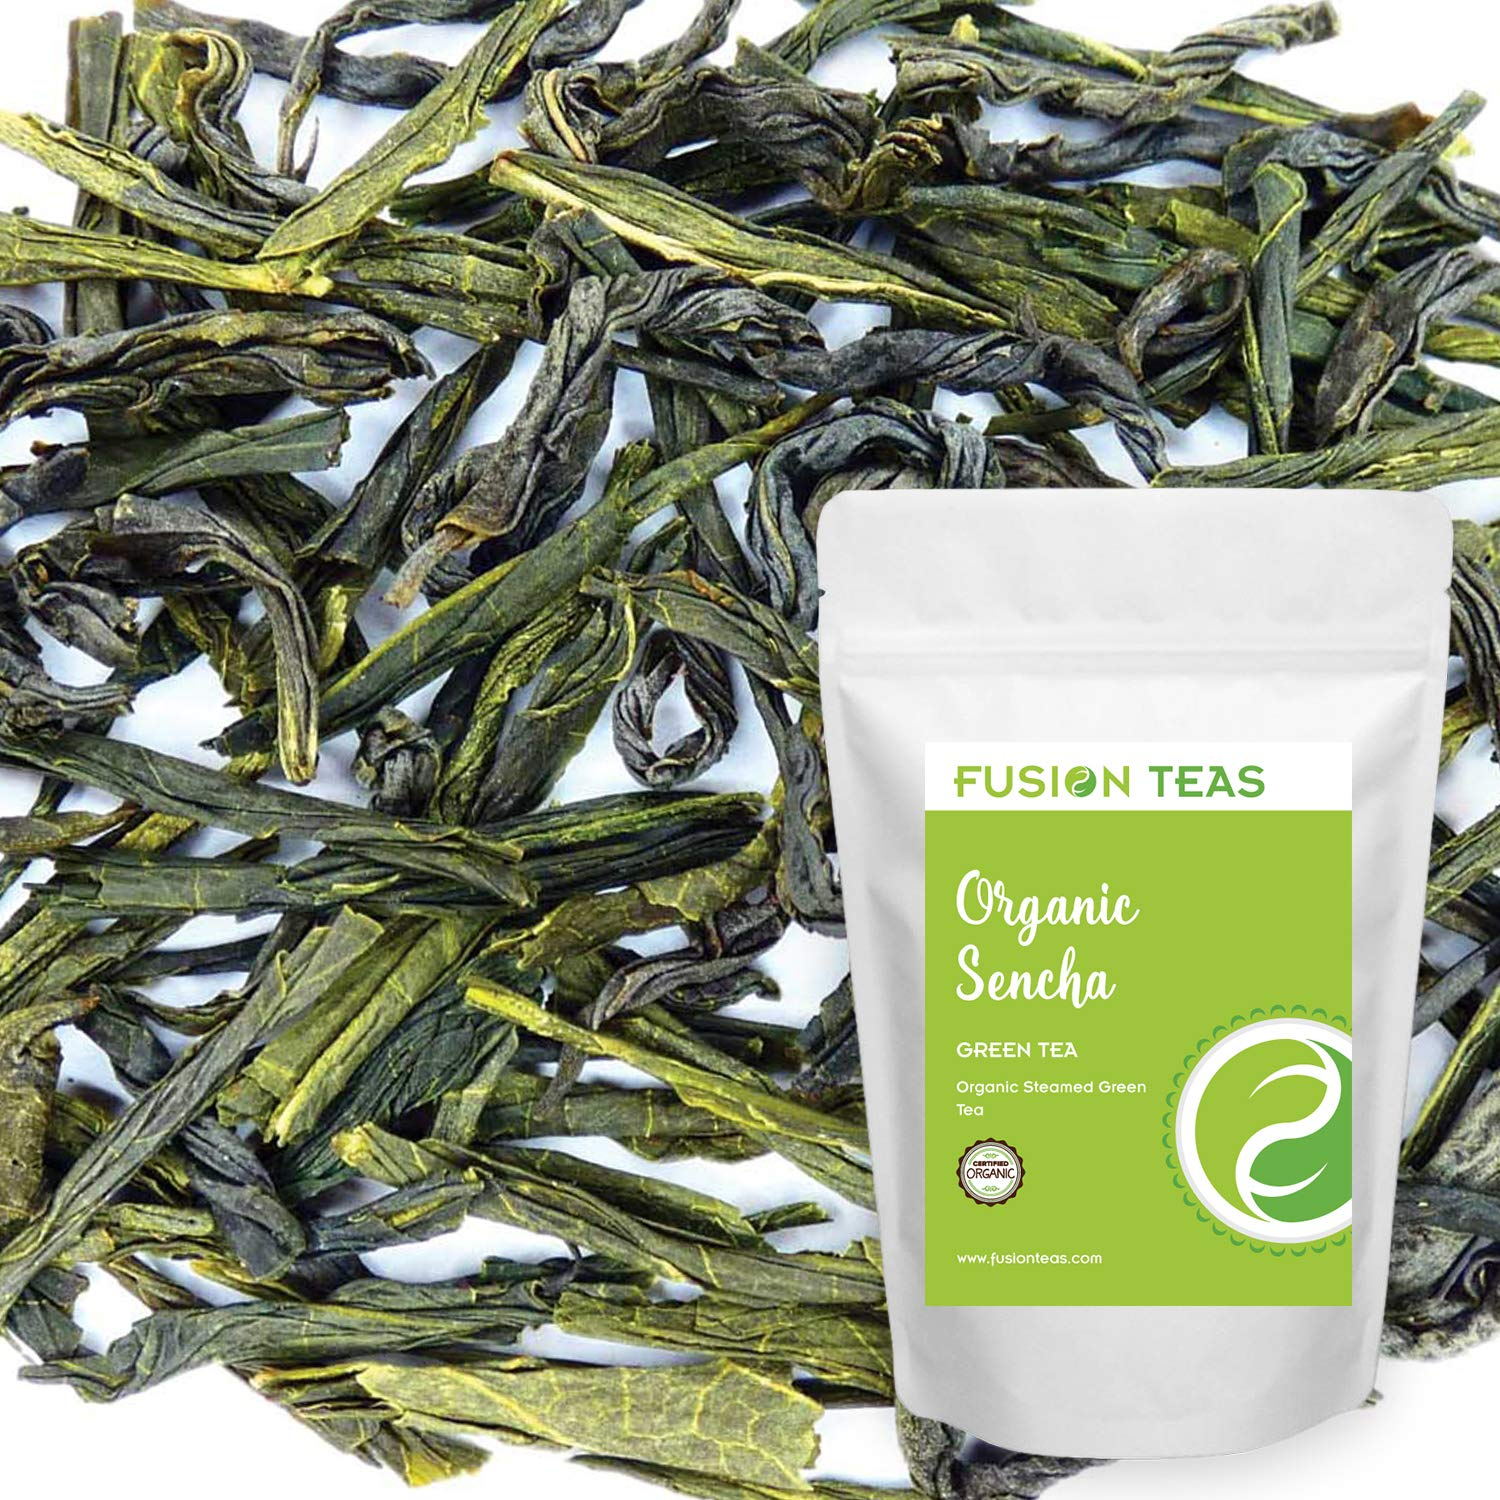 Organic Sencha Steamed Green Tea - Gourmet Pure Loose Leaf Very Fixed price for sale popular